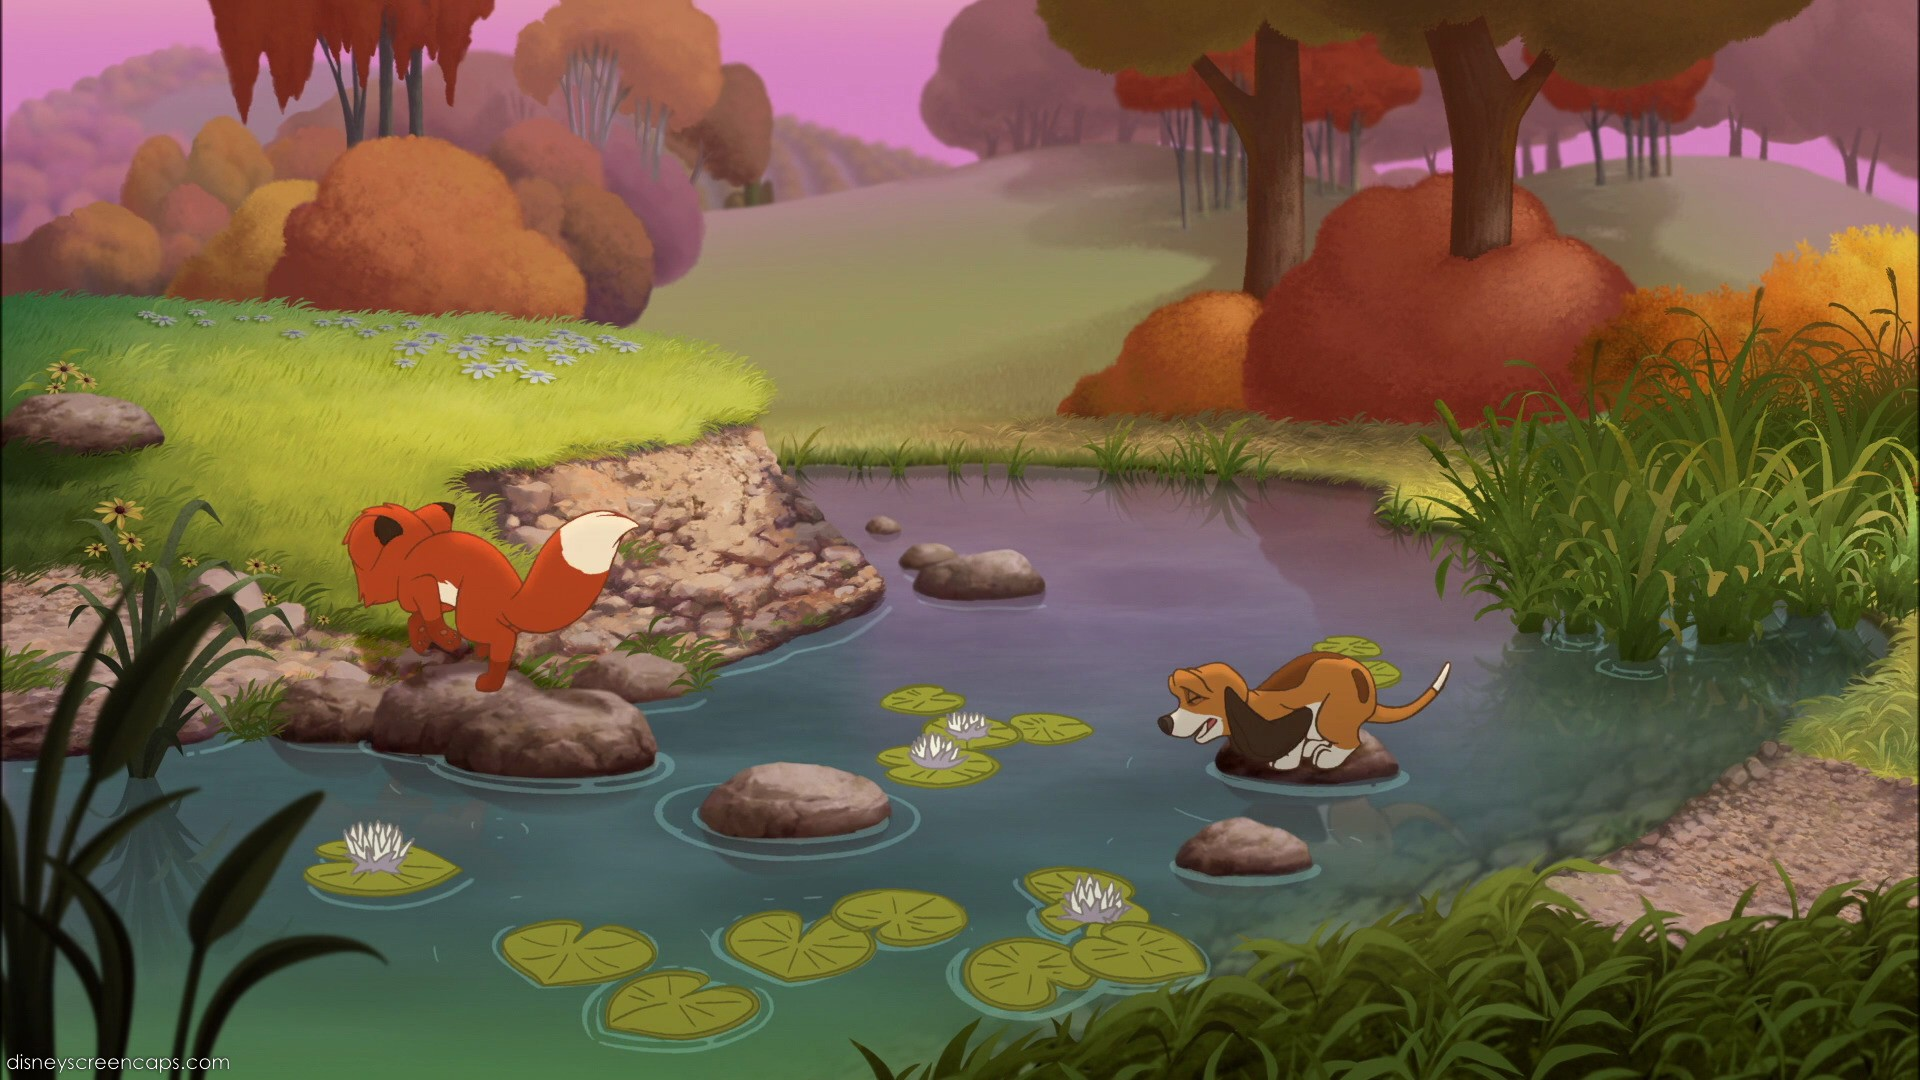 Friends For Life The Fox And The Hound 2 Disney Wiki Fandom